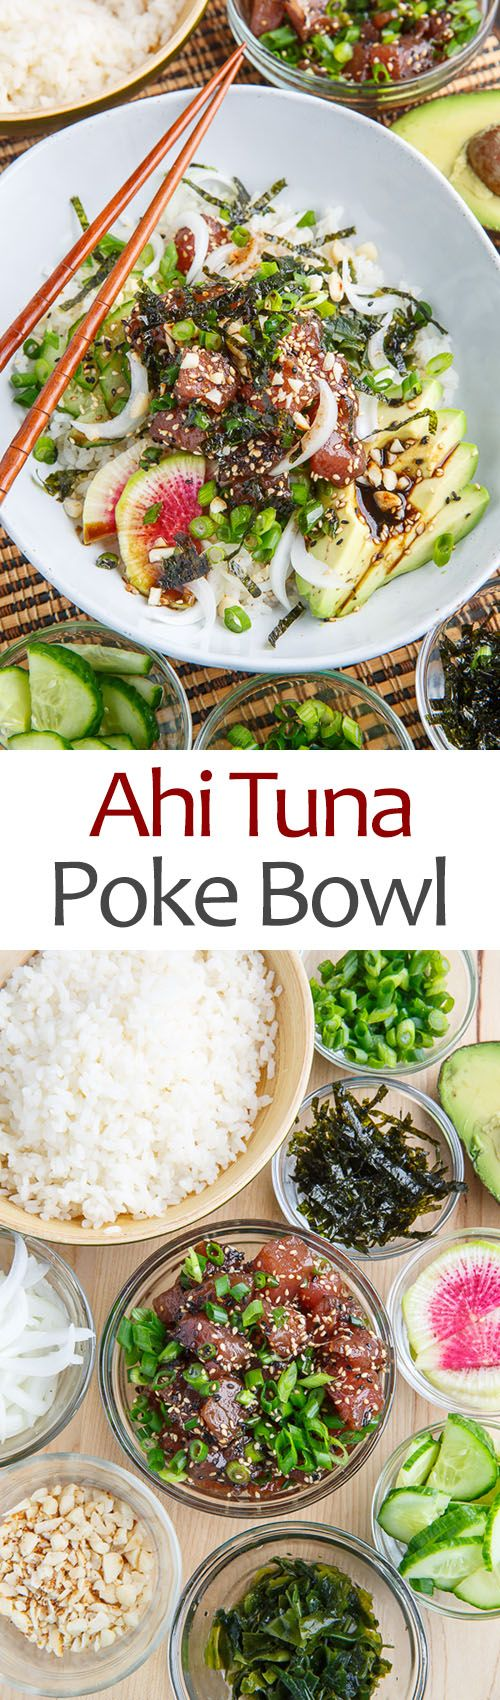 Ahi Tuna Poke Bowls are easy to make and perfect for a nice dinner at home!